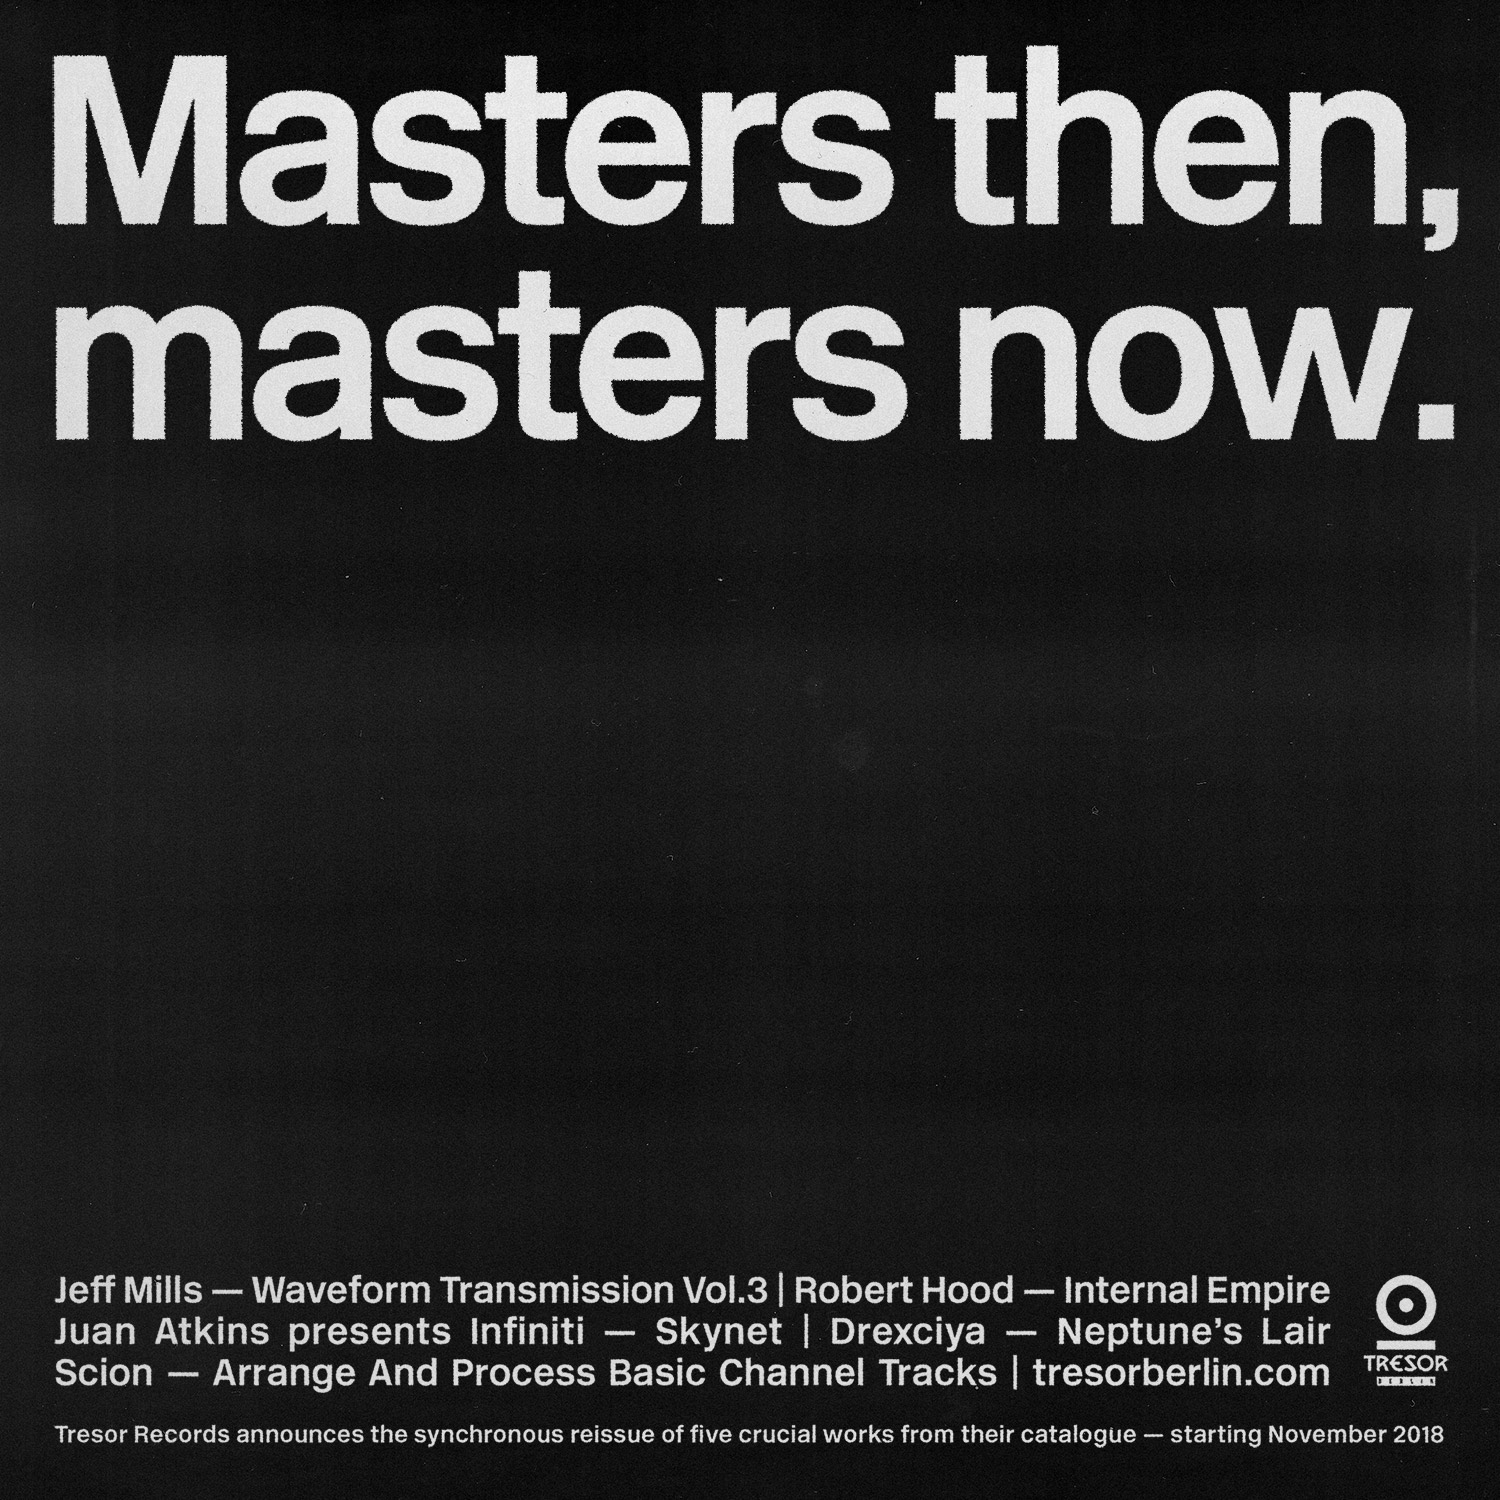 Tresor Masters then, masters now